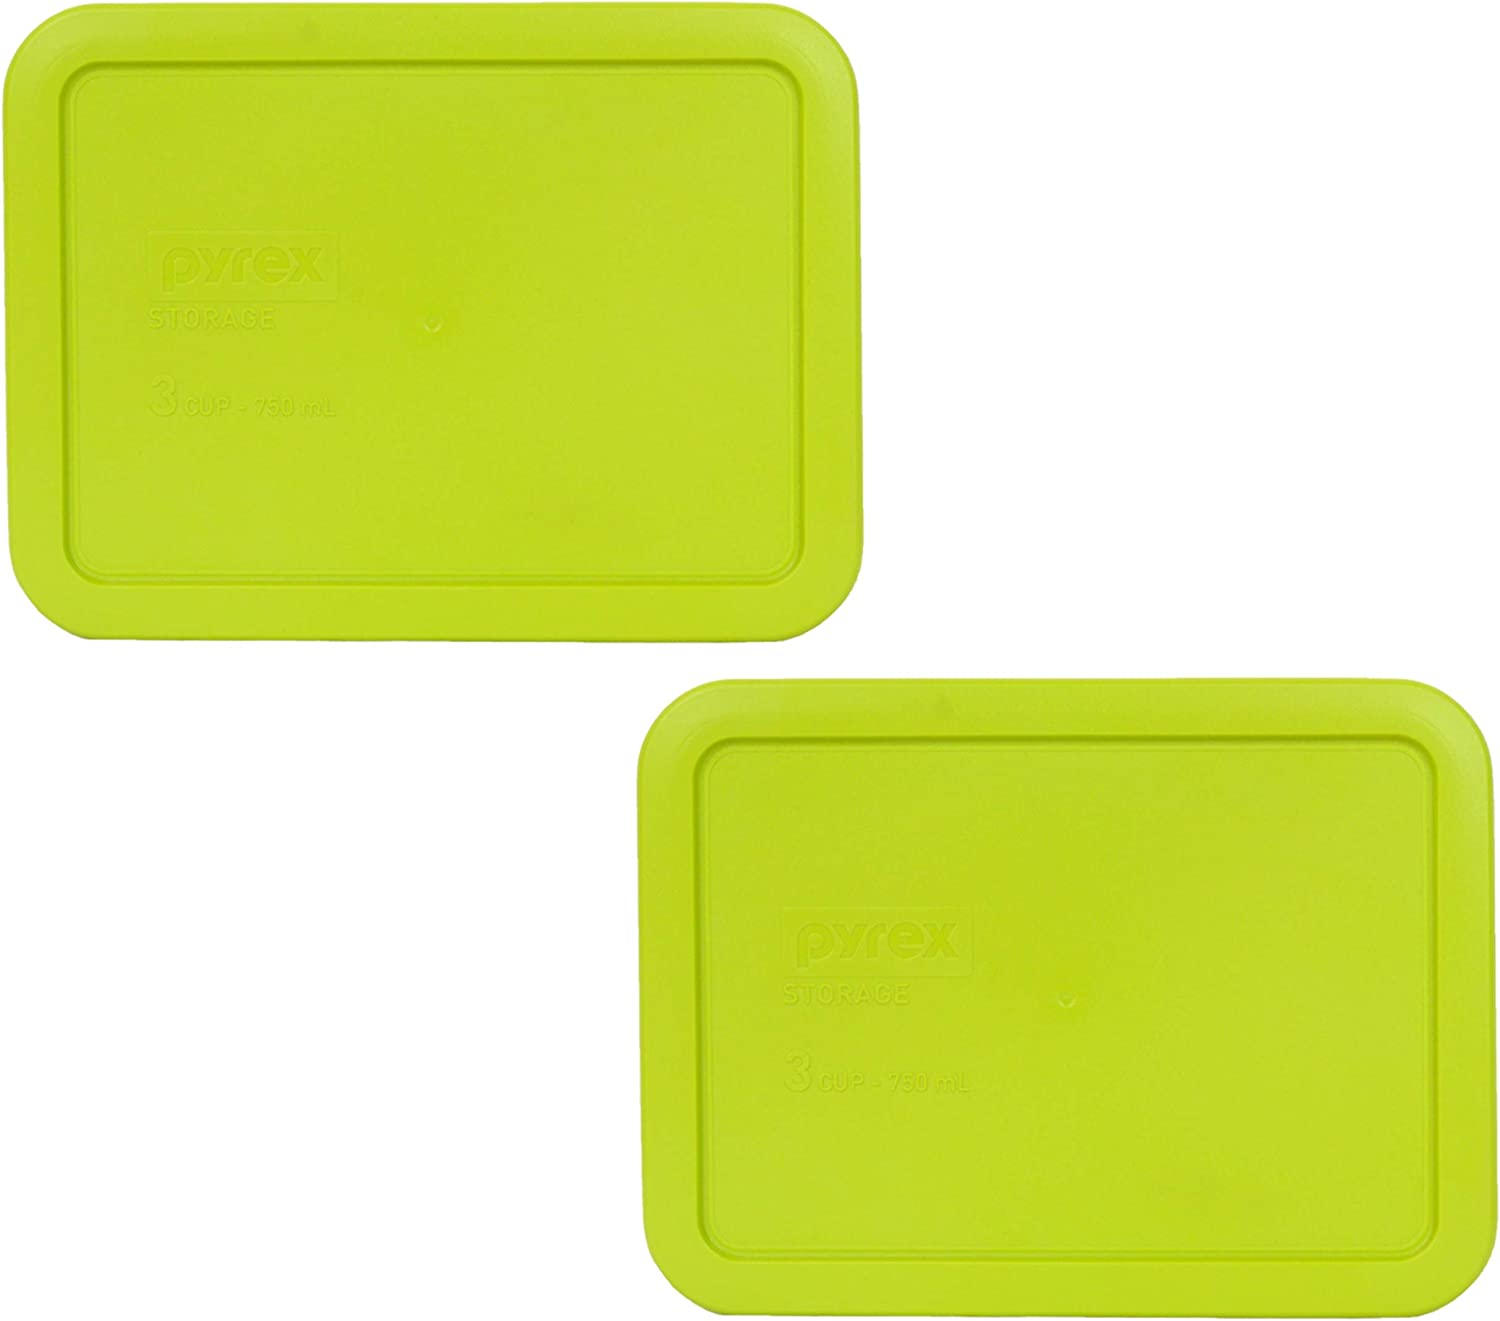 Pyrex 7210-PC 3 Cup Edamame Green Rectangle Plastic Food Storage Lid - 2 Pack